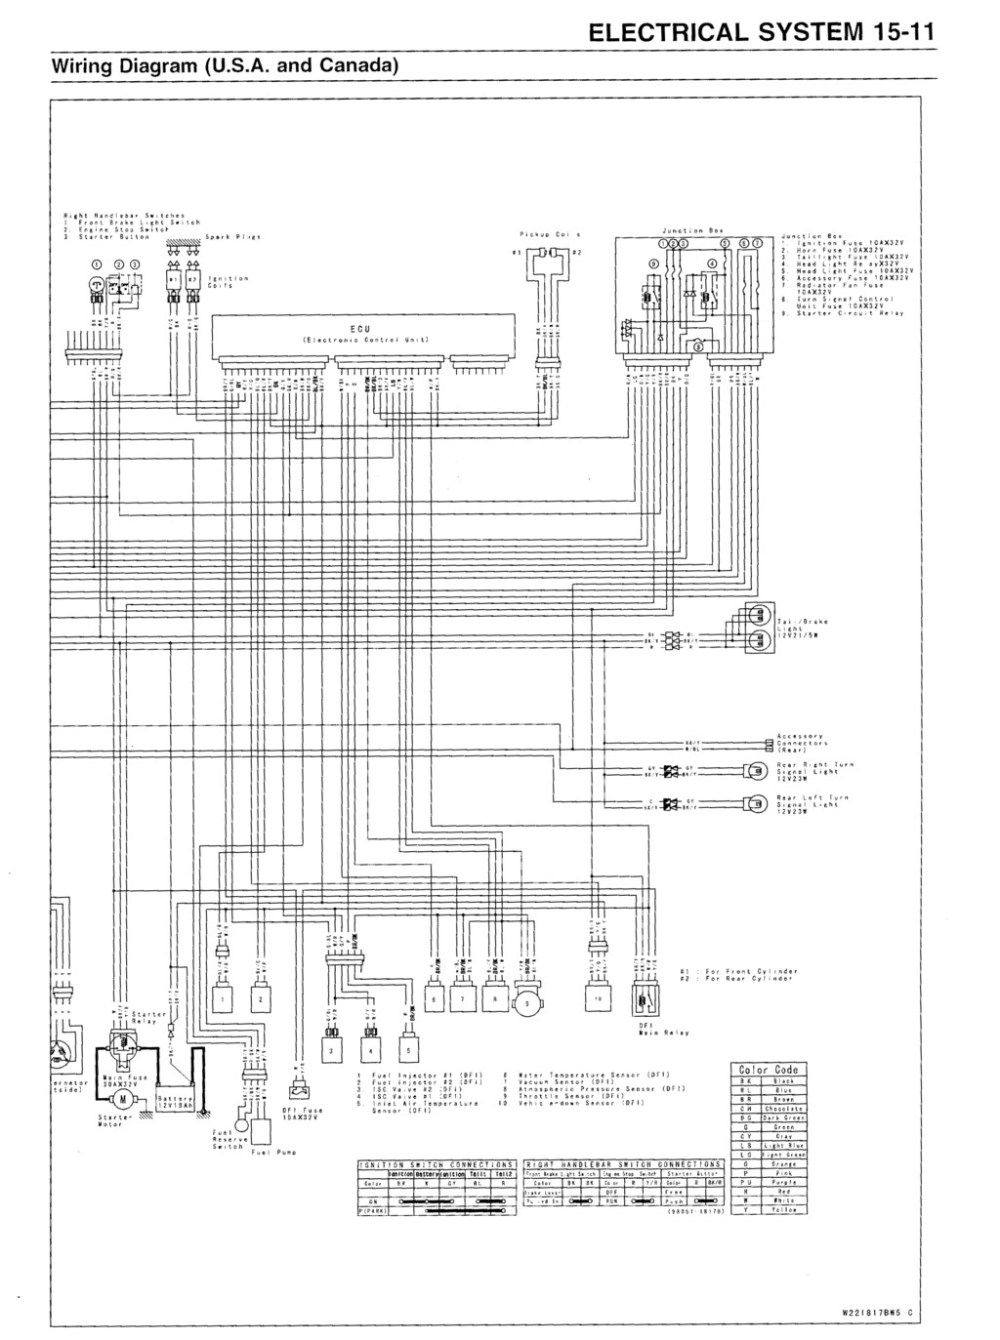 medium resolution of kawasaki vulcan ignition wiring diagram wiring diagram for you kawasaki kz1000 vulcan 800 ignition diagram